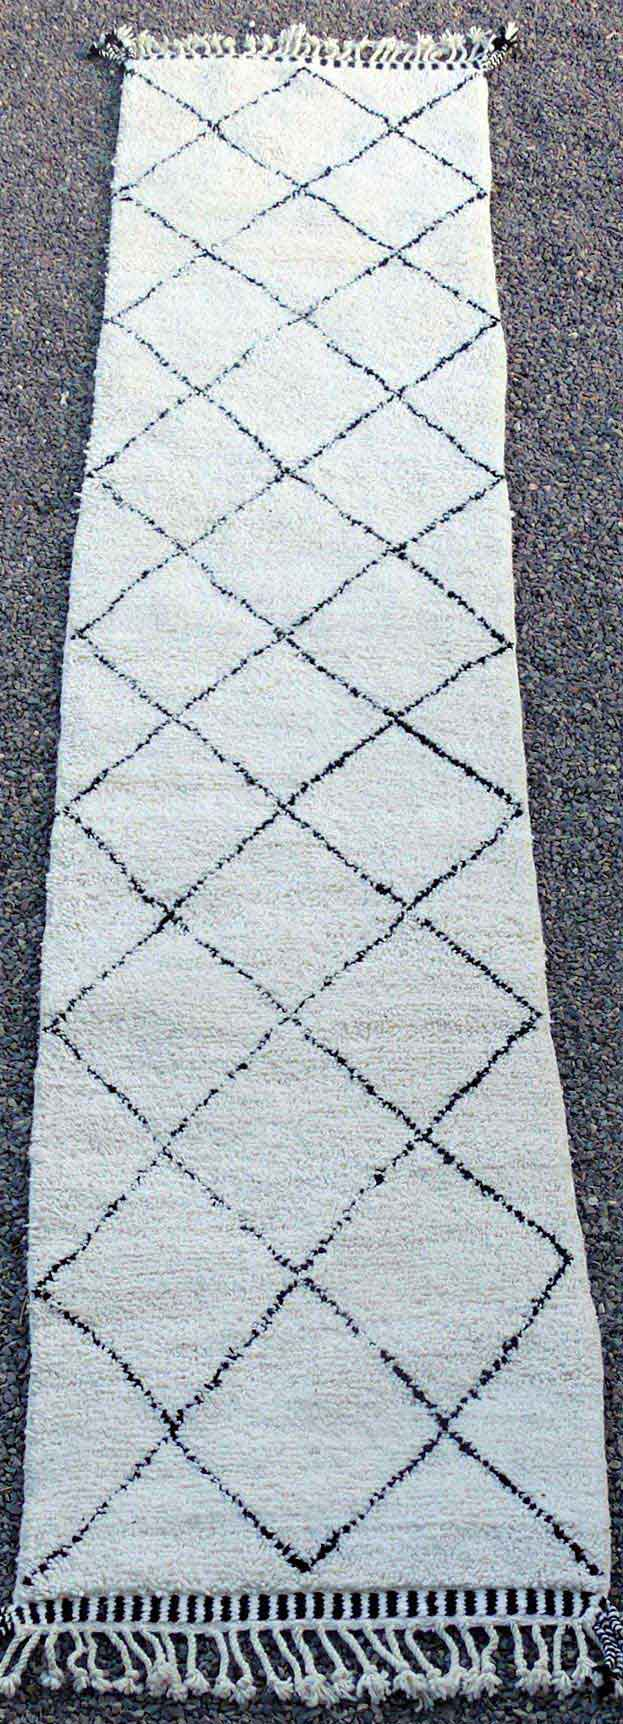 BENI OURAIN-WOOL RUGS Beni Ourain Large sizes moroccan rugs BO49179/MA